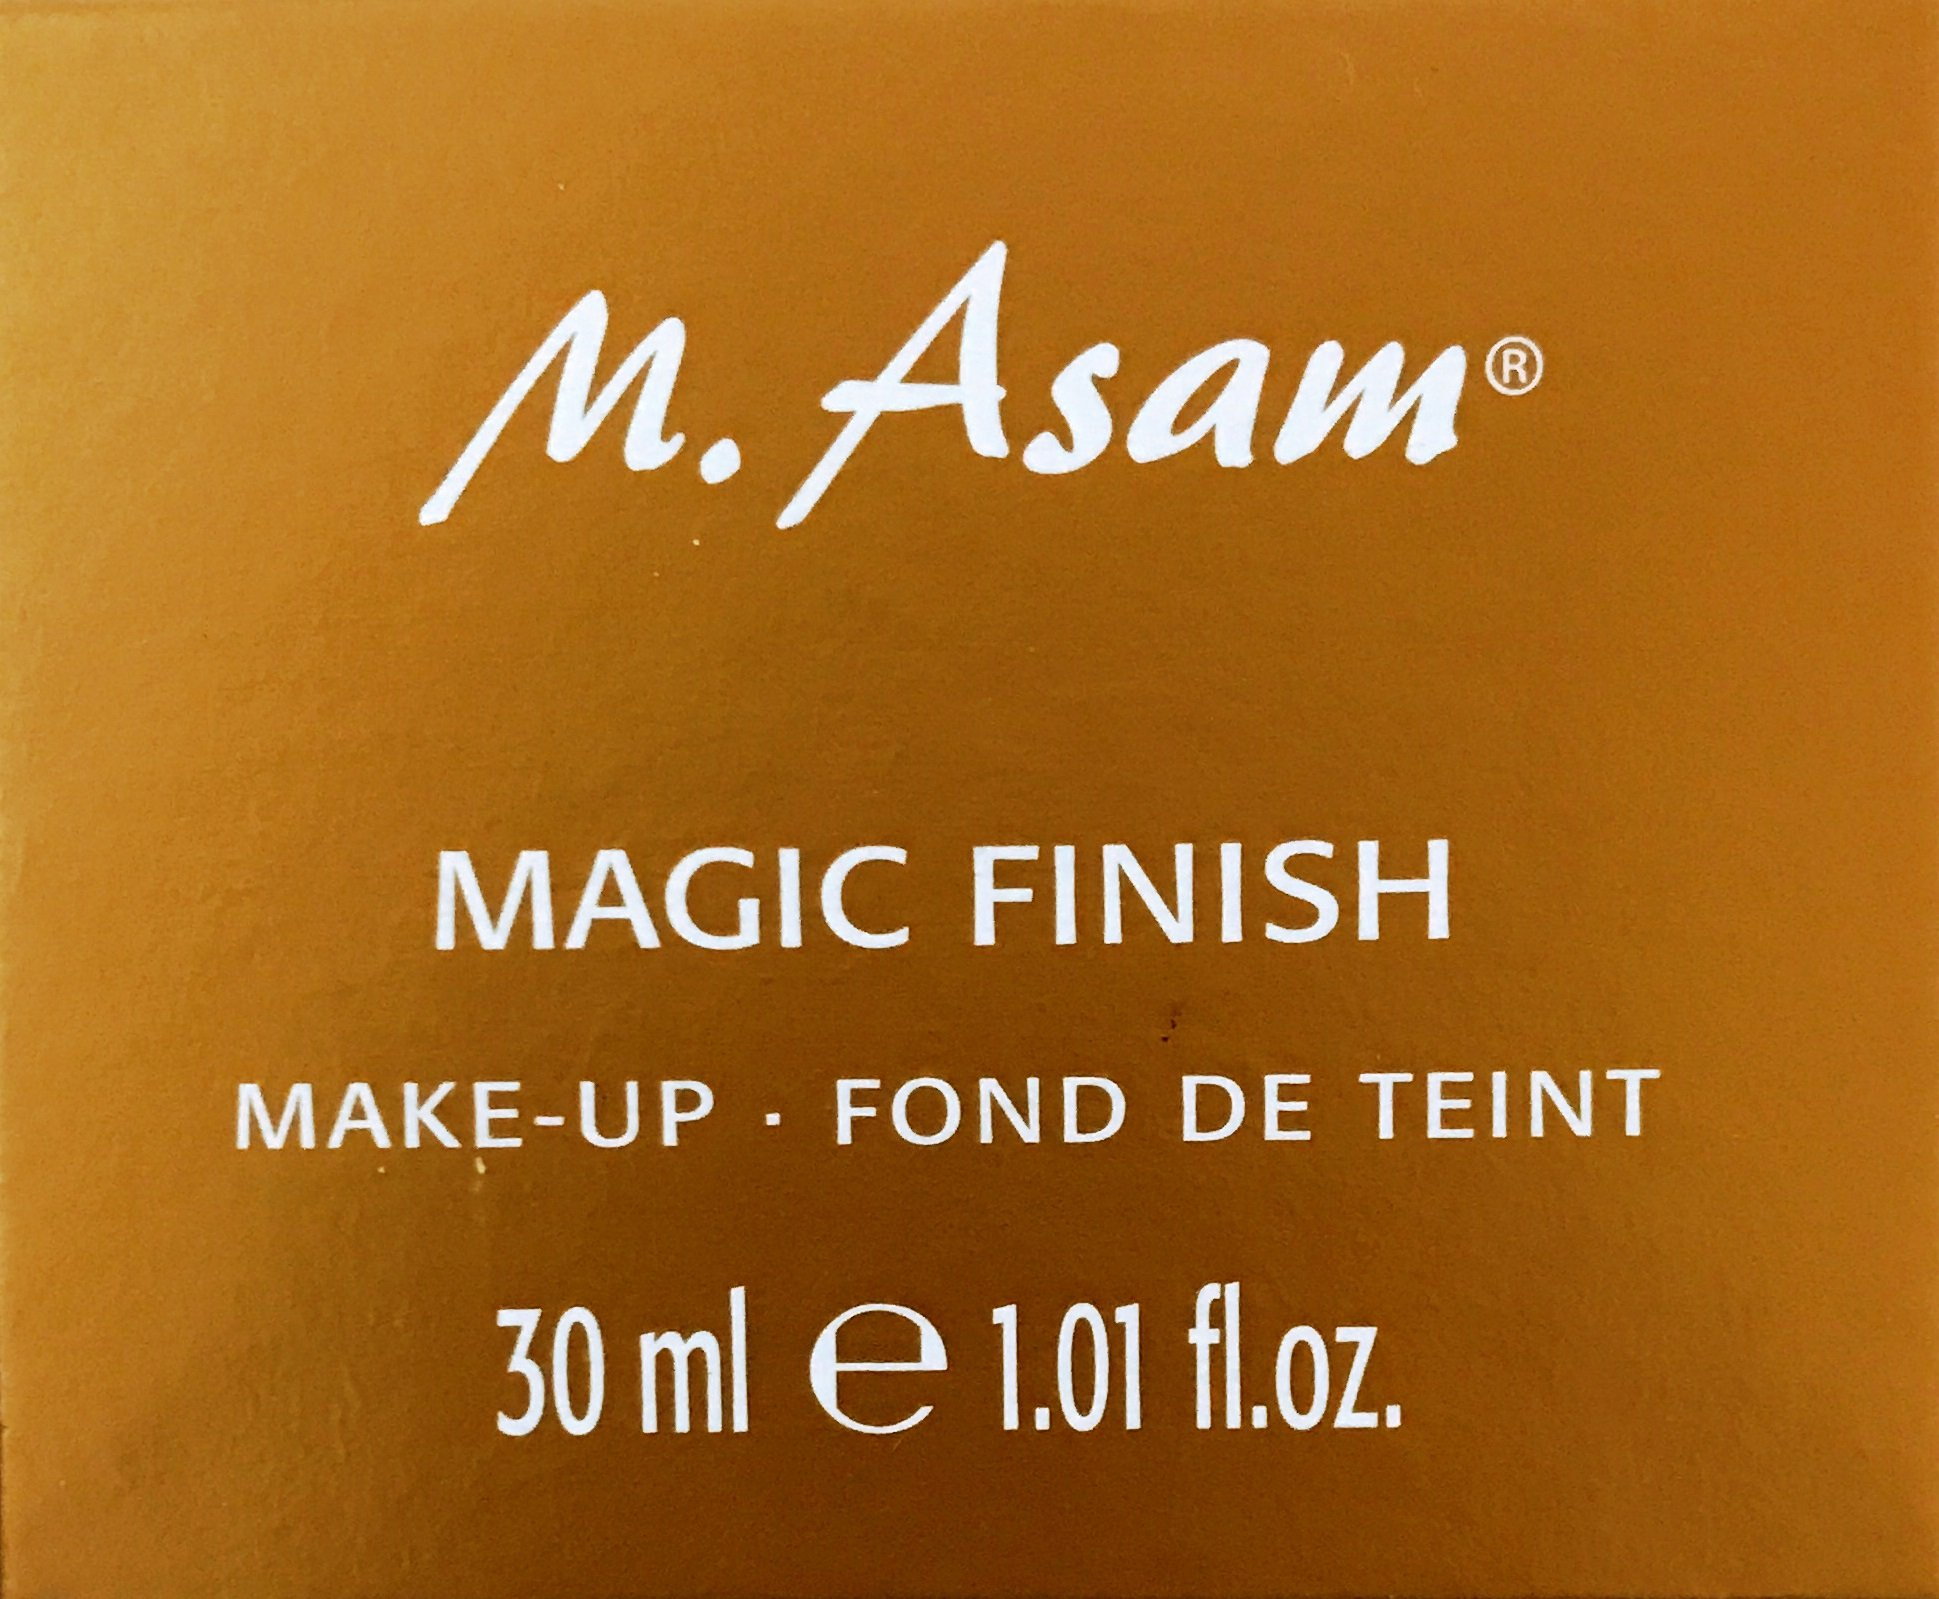 M. Asam Magic Finish ~ Lightweight, wrinkle-filling makeup mousse 1.01 fl. oz by Masam (Image #1)